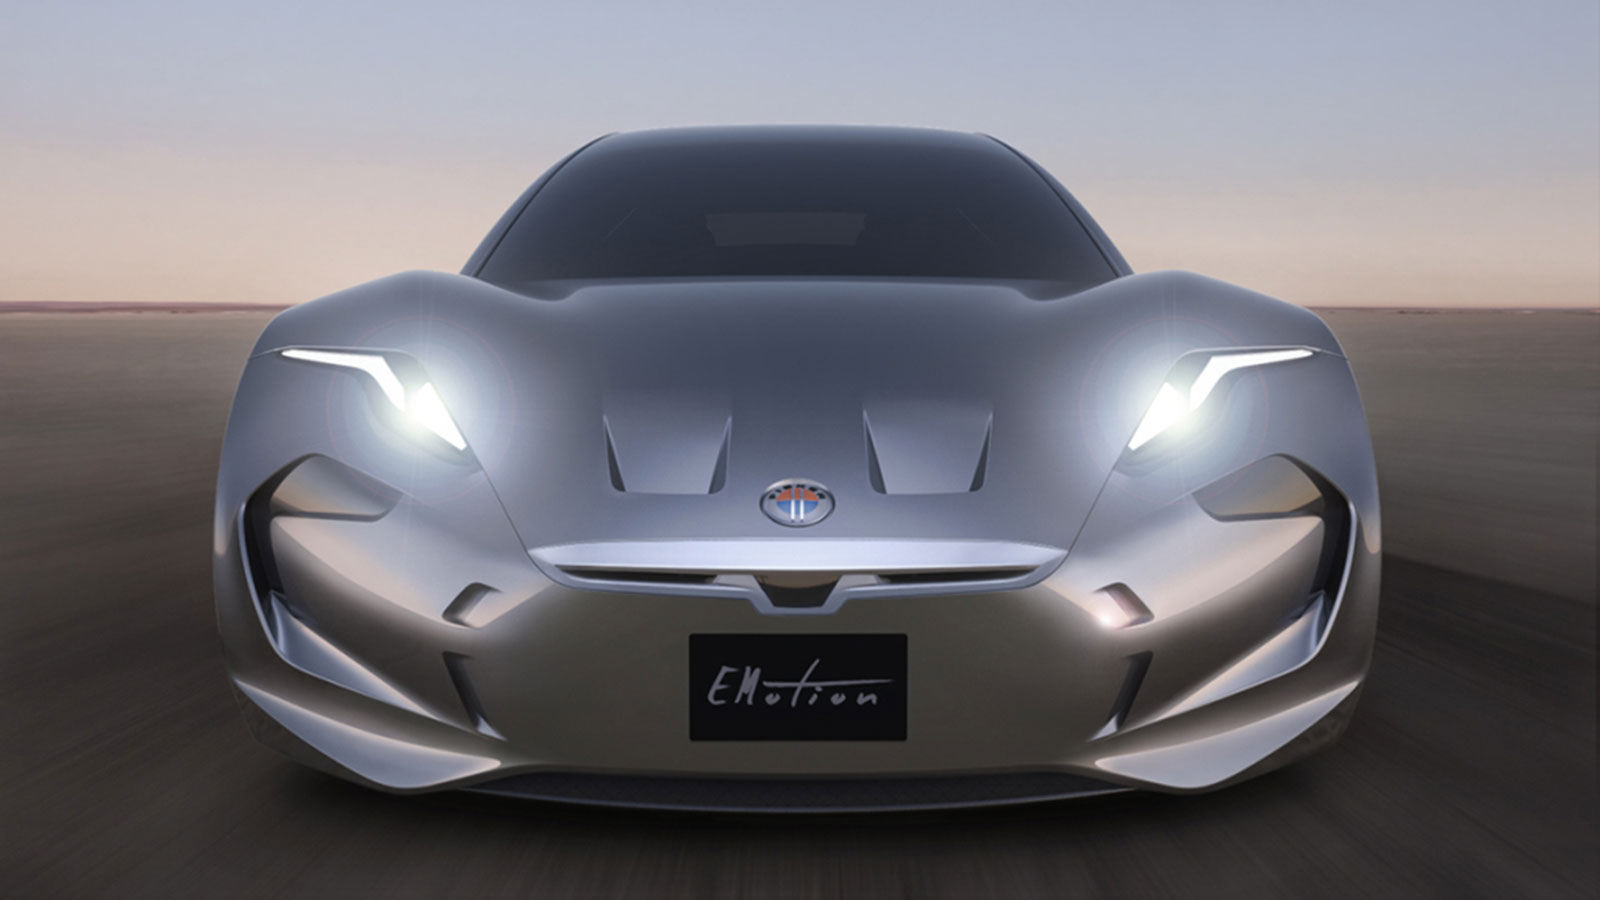 FISKER EMOTION ALL-ELECTRIC LUXURY SPORTS SEDAN